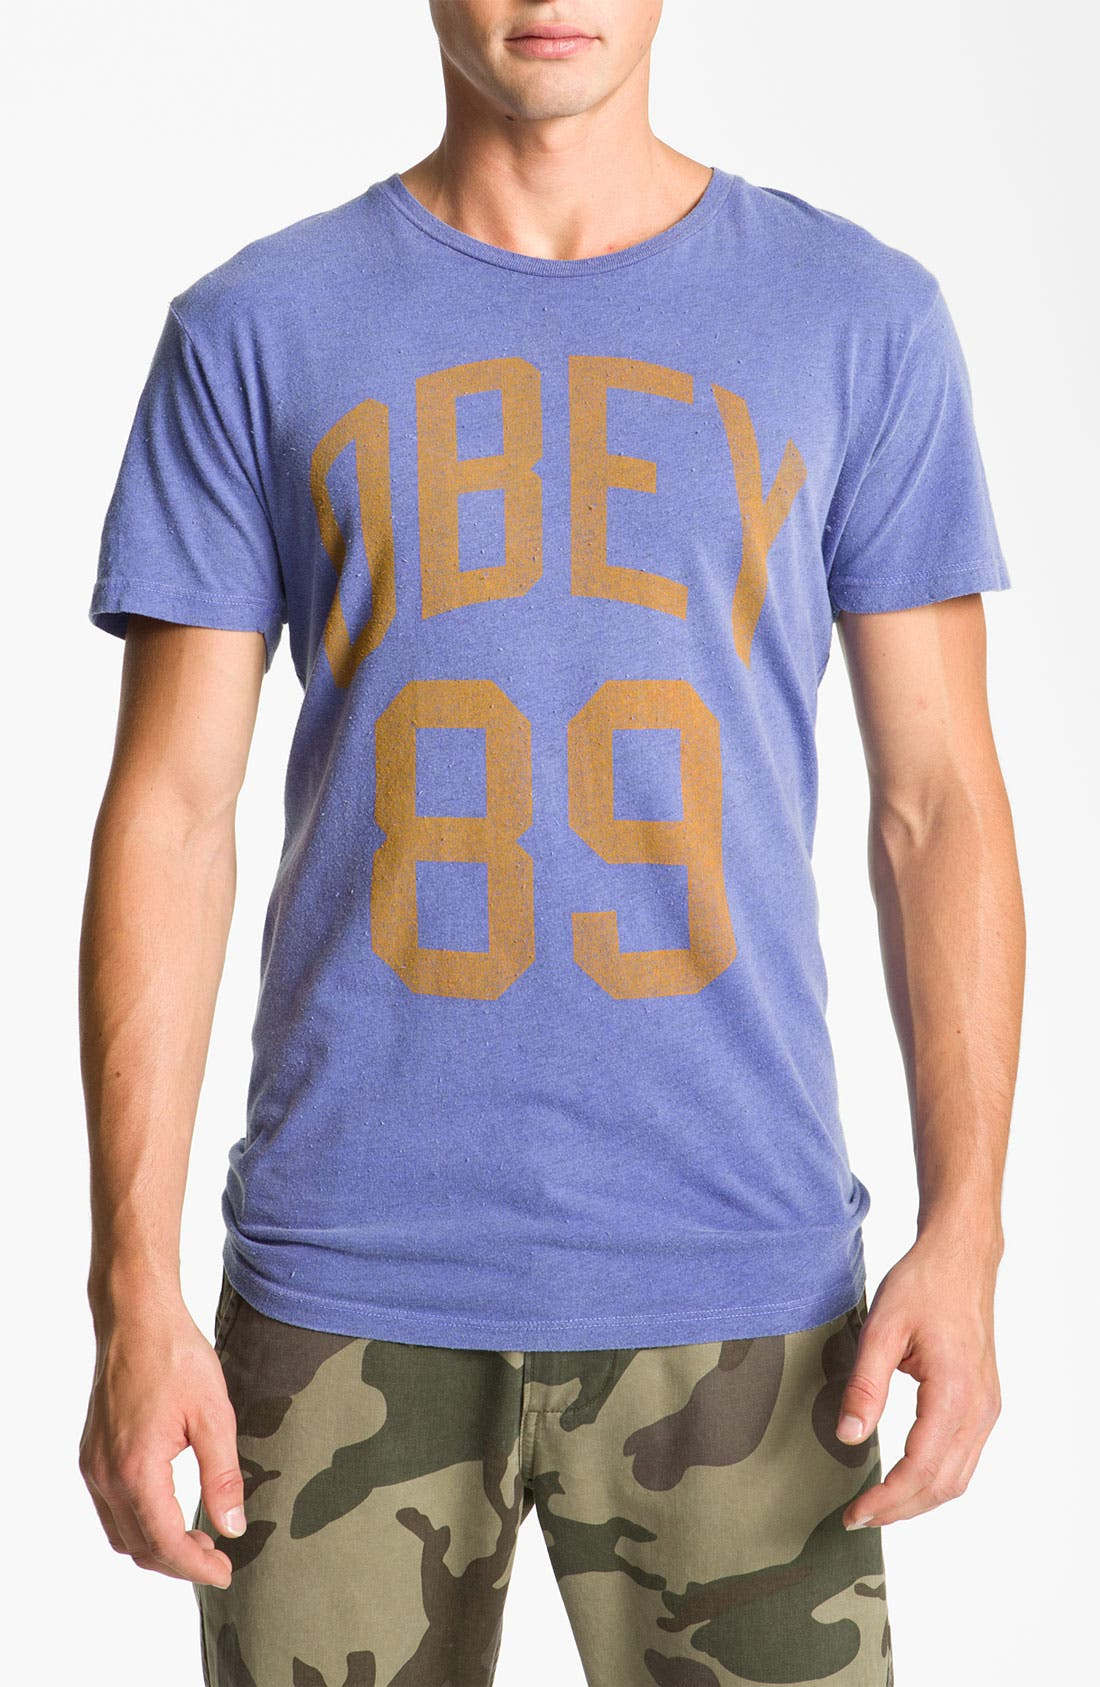 Main Image - Obey 'Triple Double' Graphic T-Shirt